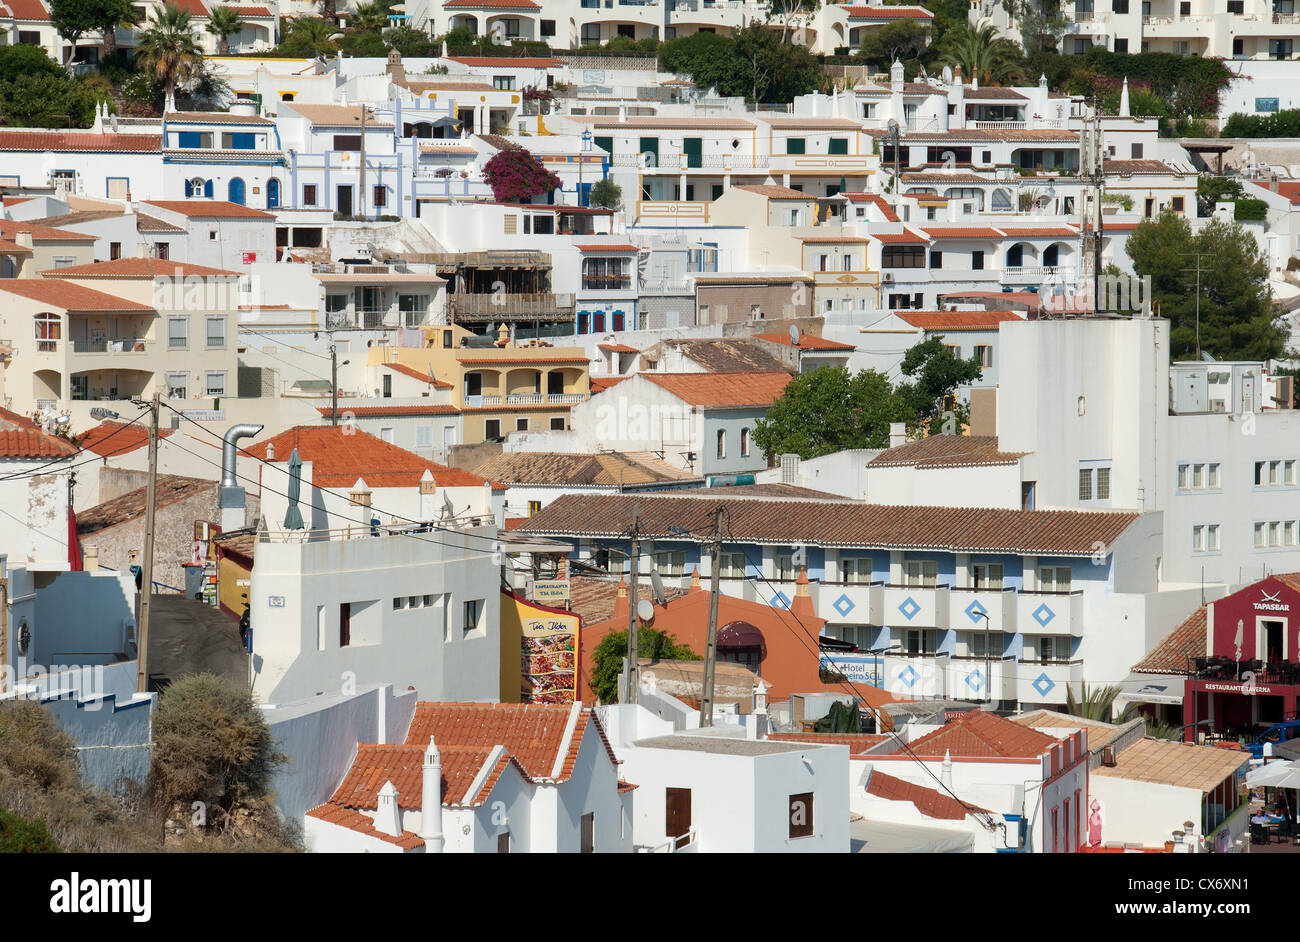 towns in portugal stockfotos towns in portugal bilder seite 2 alamy. Black Bedroom Furniture Sets. Home Design Ideas